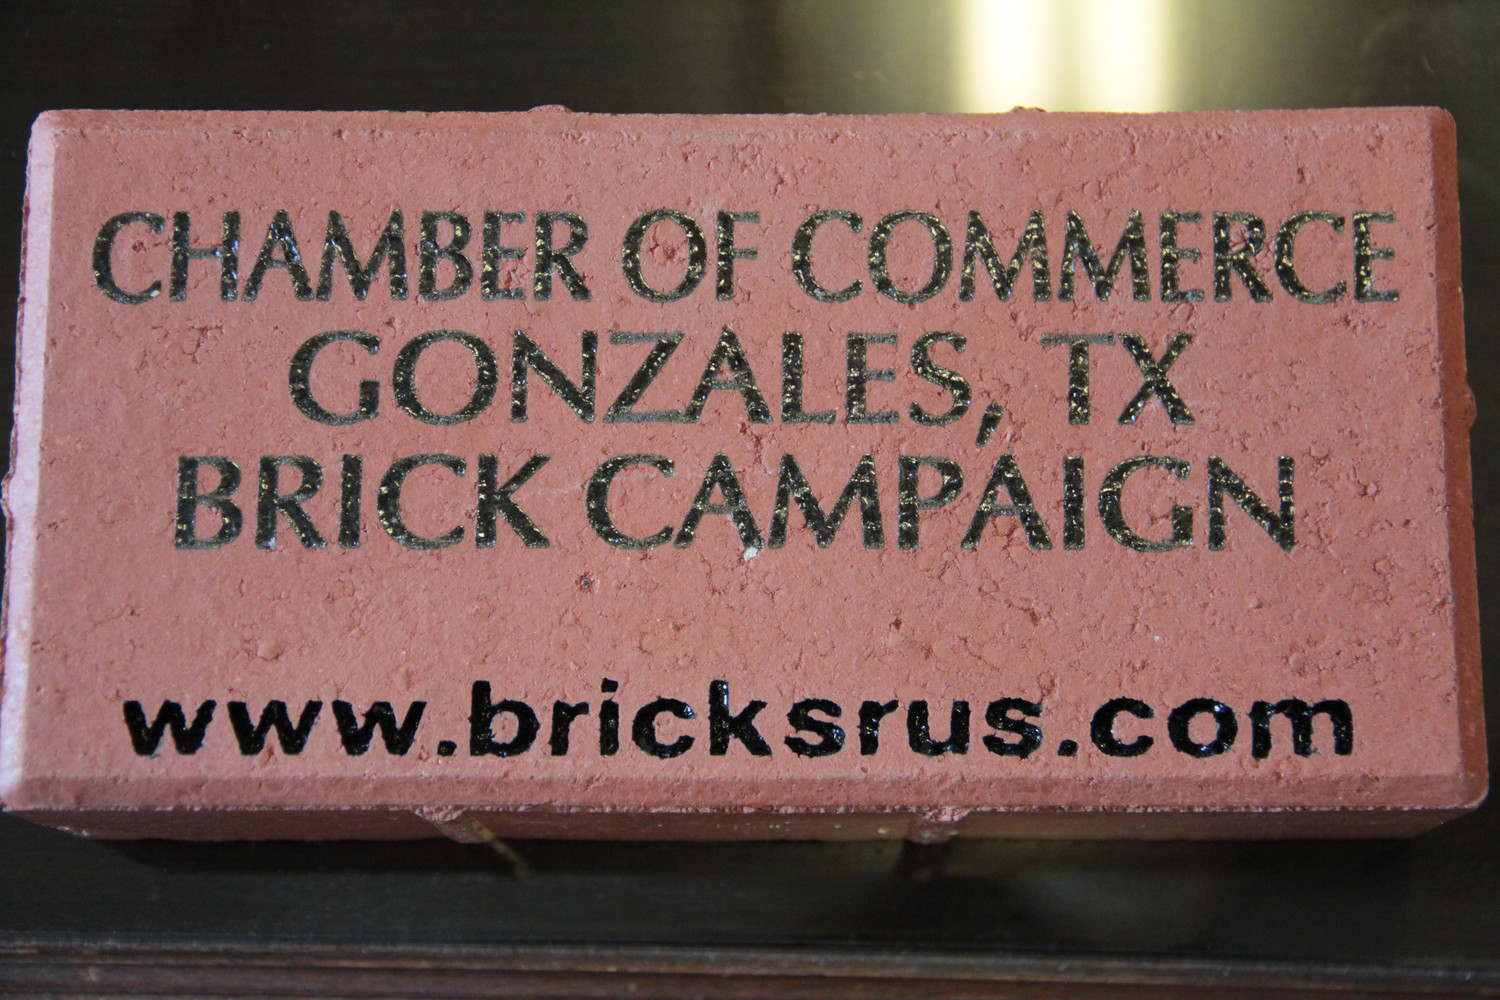 The chamber looks to start a fundraising campaign by selling bricks that will adorn their new sidewalk.